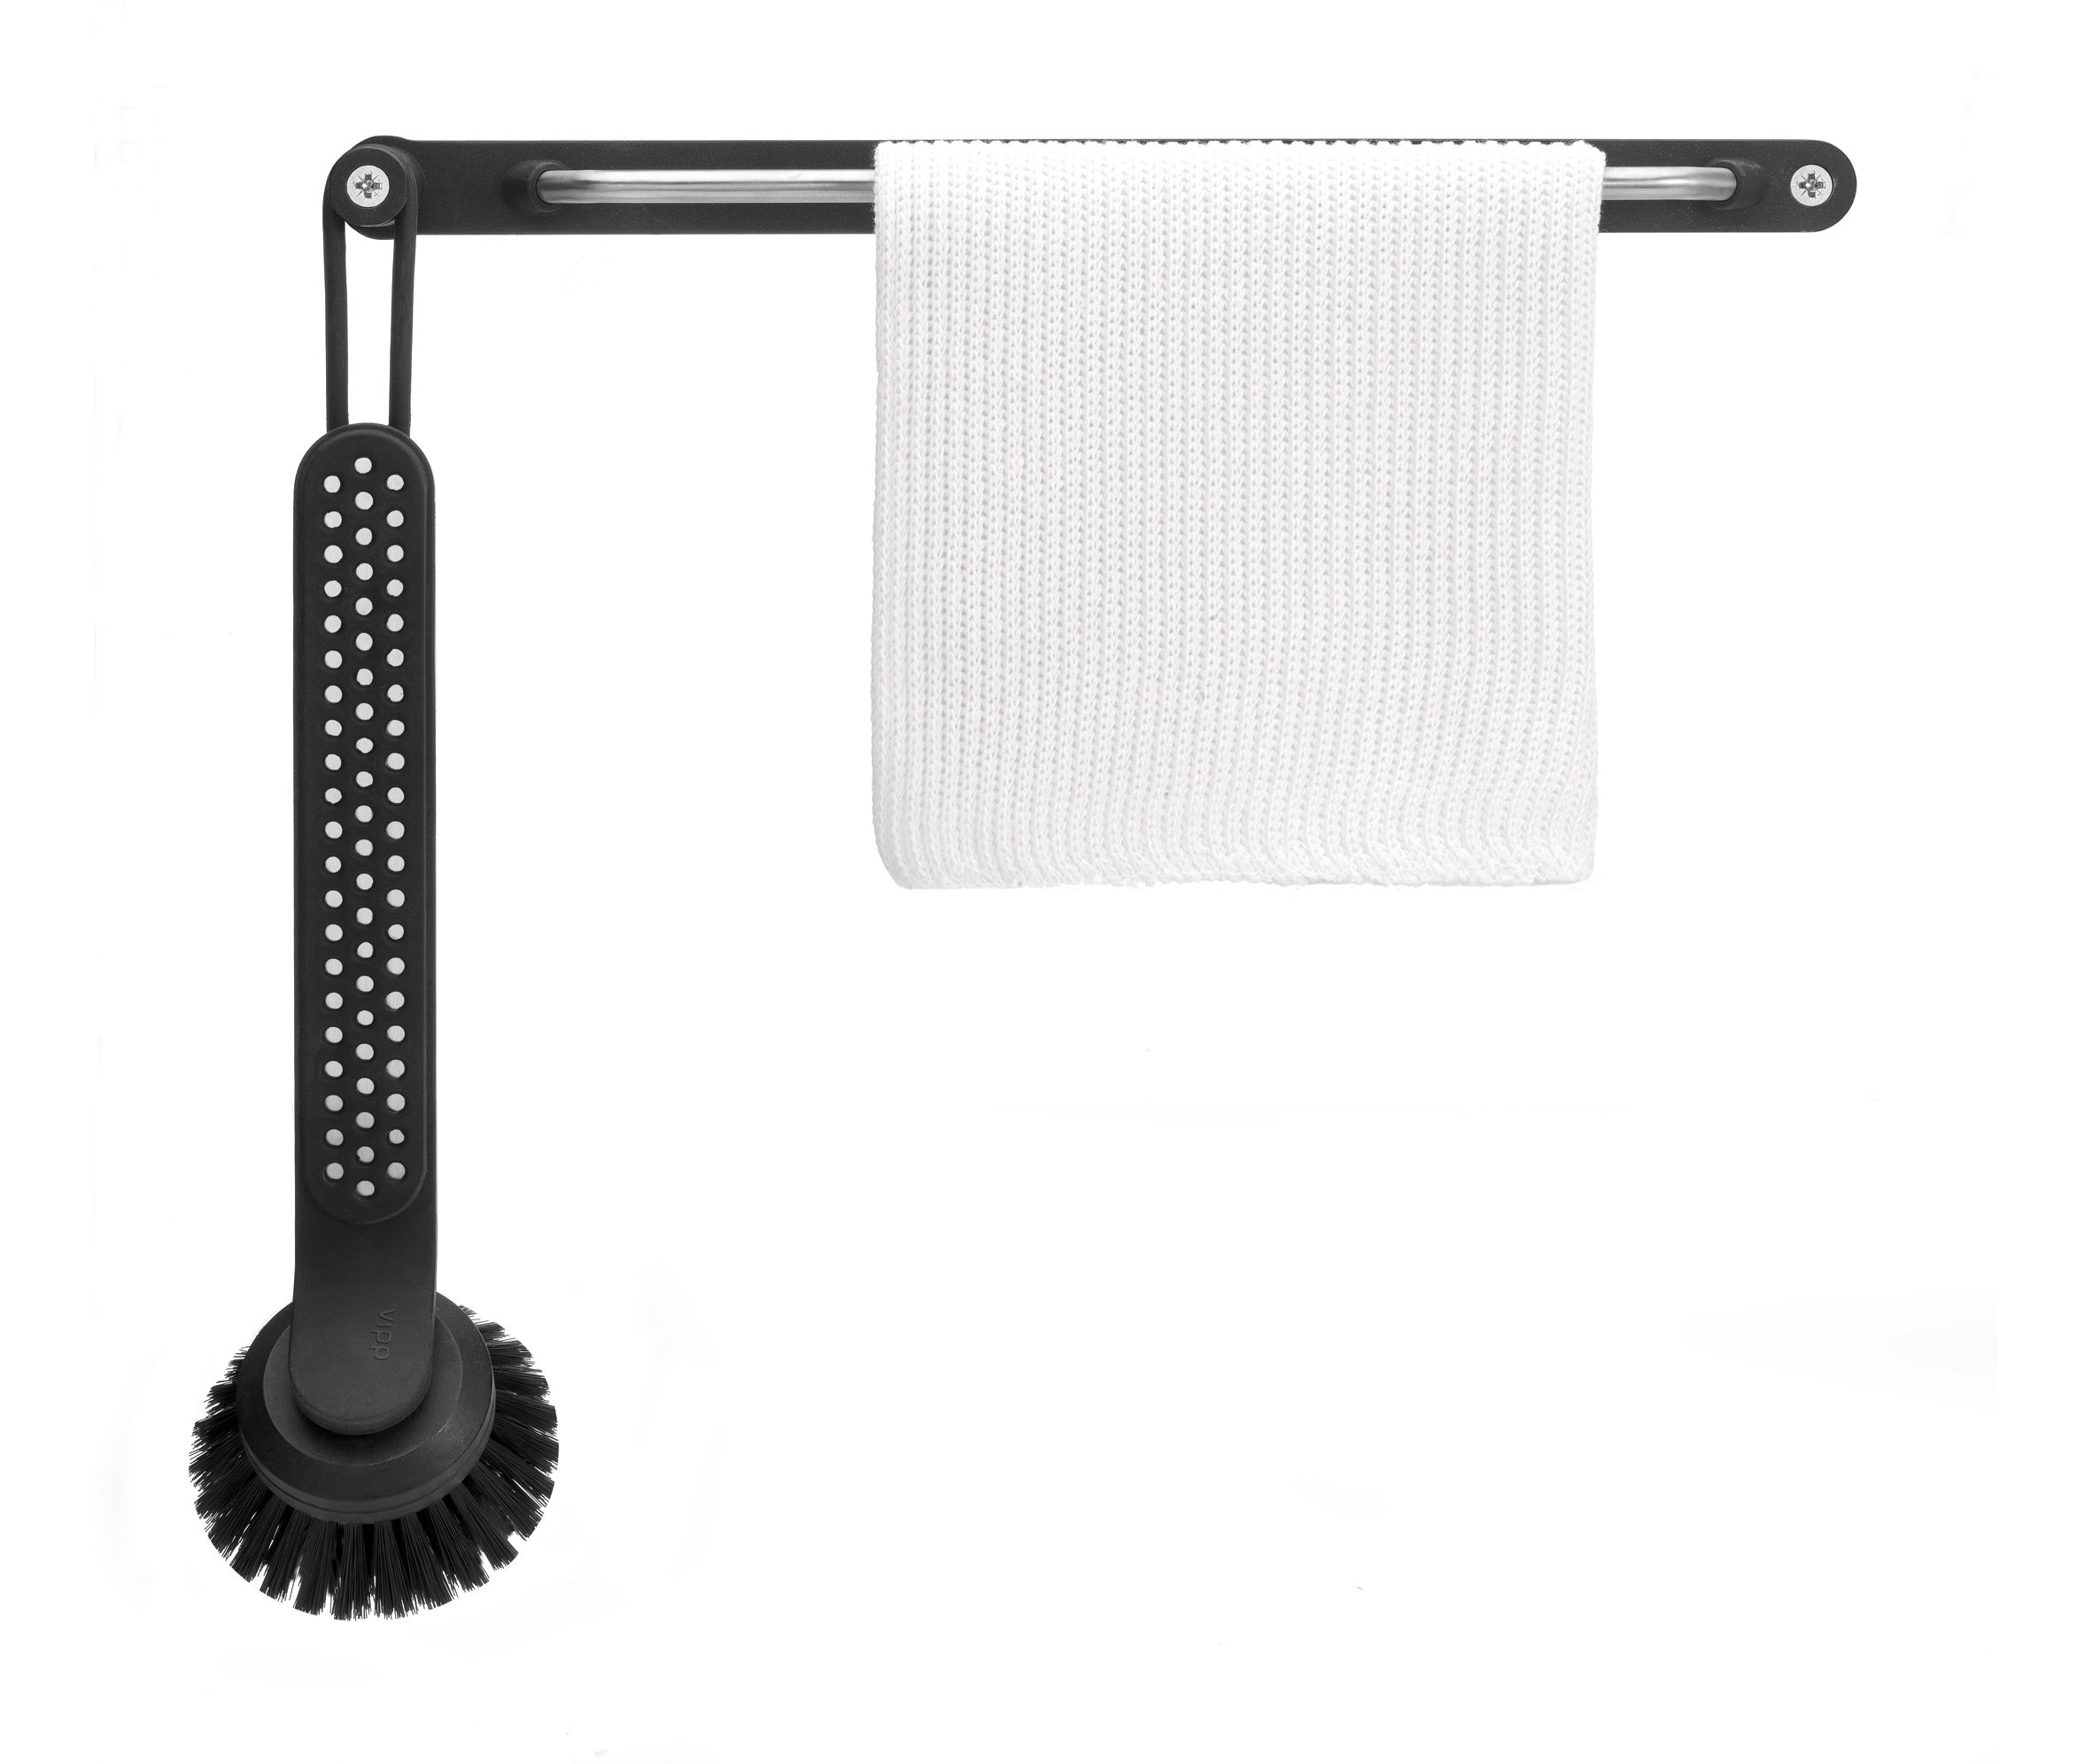 Kitchenware - Kitchen Sink Accessories - Vipp 280 Washing up brush by Vipp - Black & steel - Rubber, Stainless steel